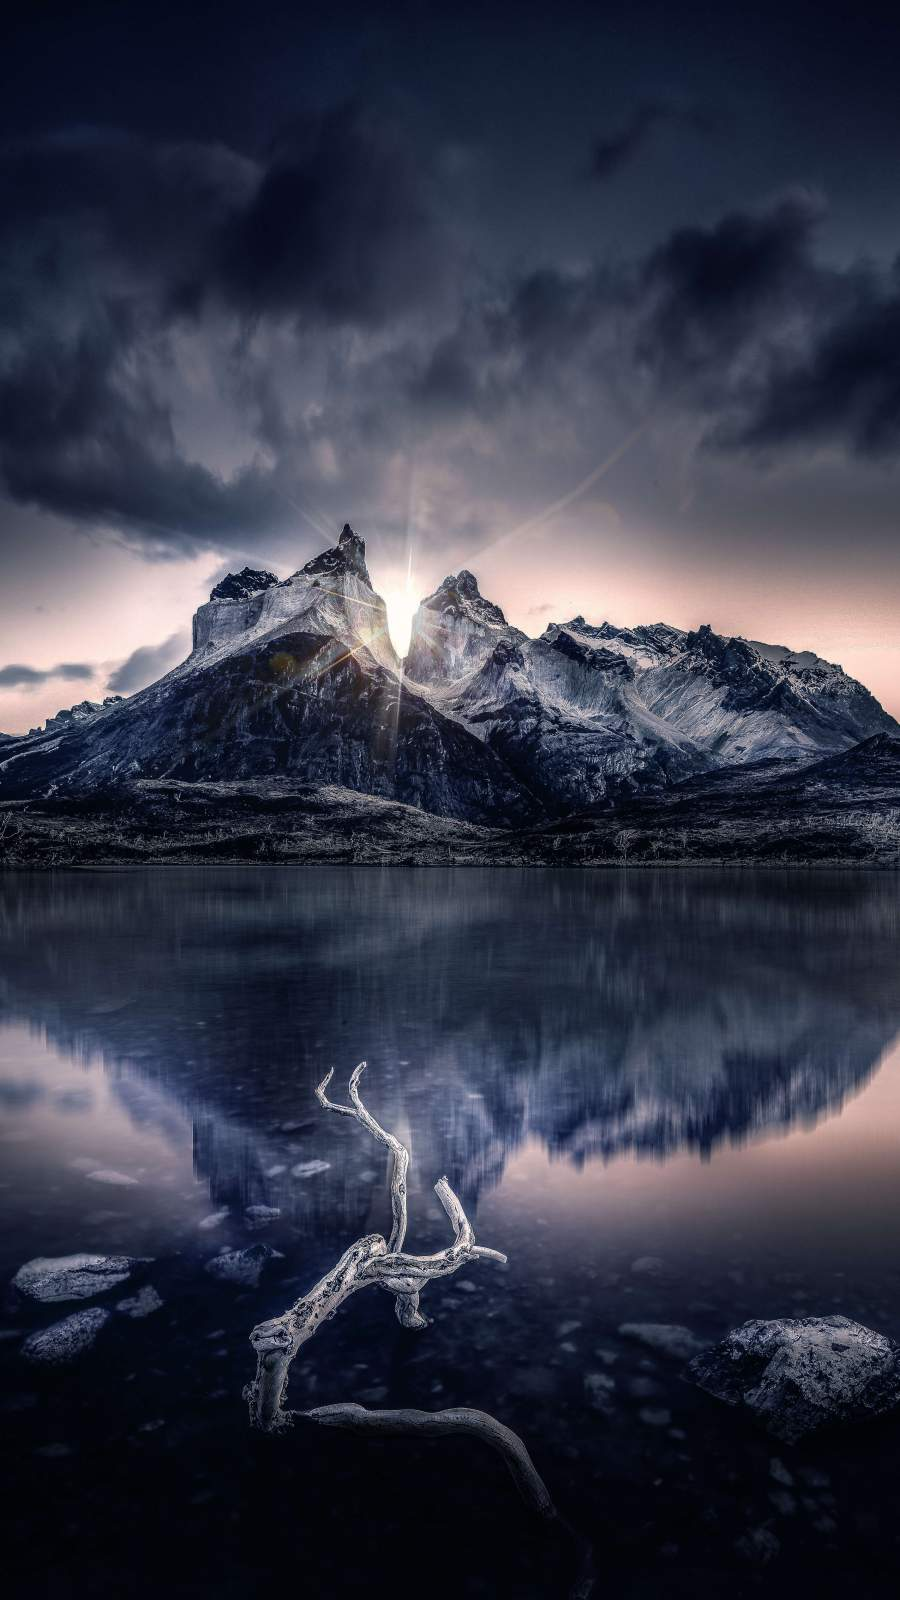 Snow Mountain Reflection iPhone Wallpaper